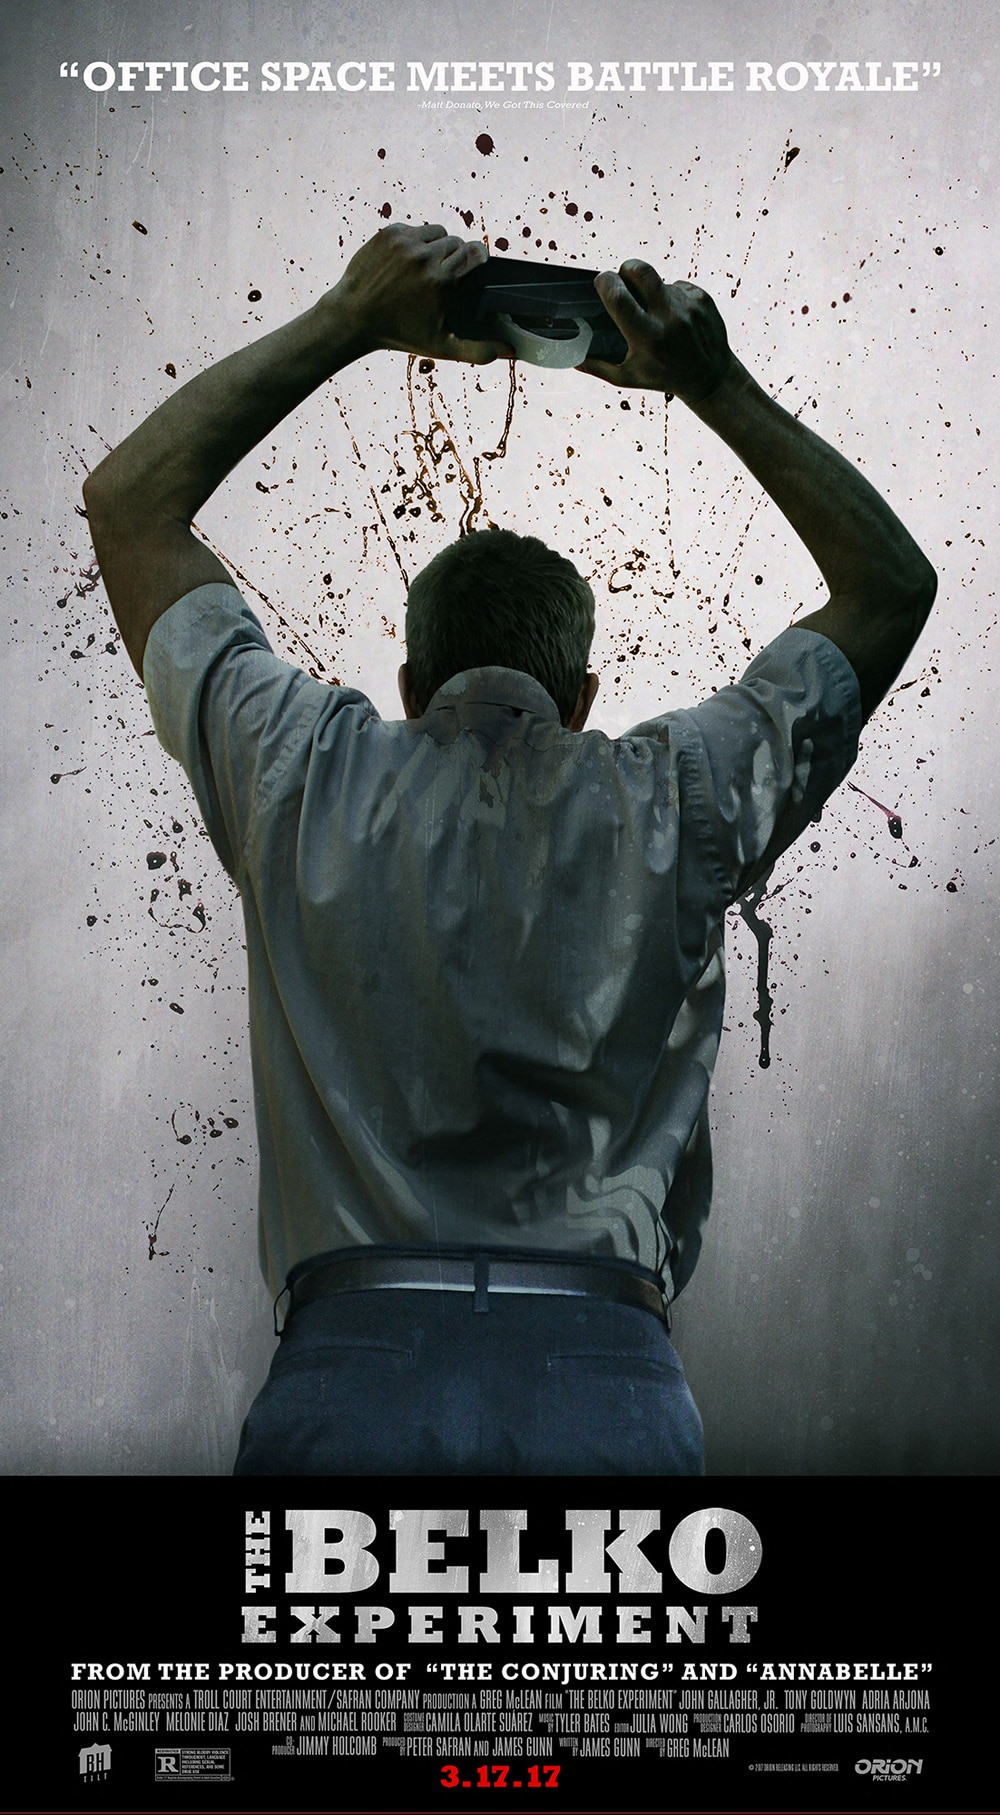 Belko Poster - Michael Rooker on The Belko Experiment